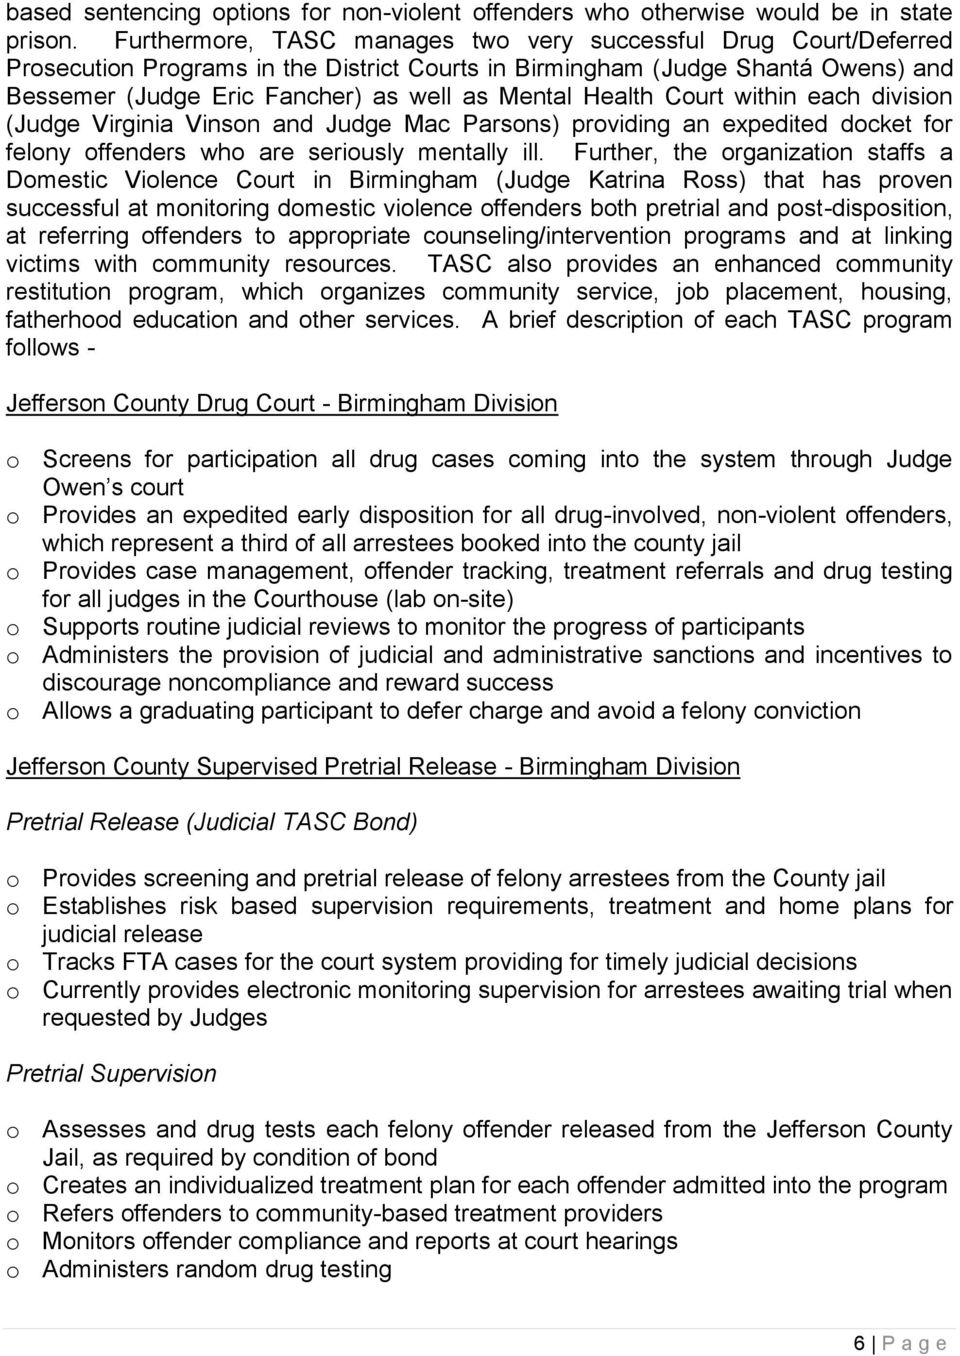 Health Court within each division (Judge Virginia Vinson and Judge Mac Parsons) providing an expedited docket for felony offenders who are seriously mentally ill.